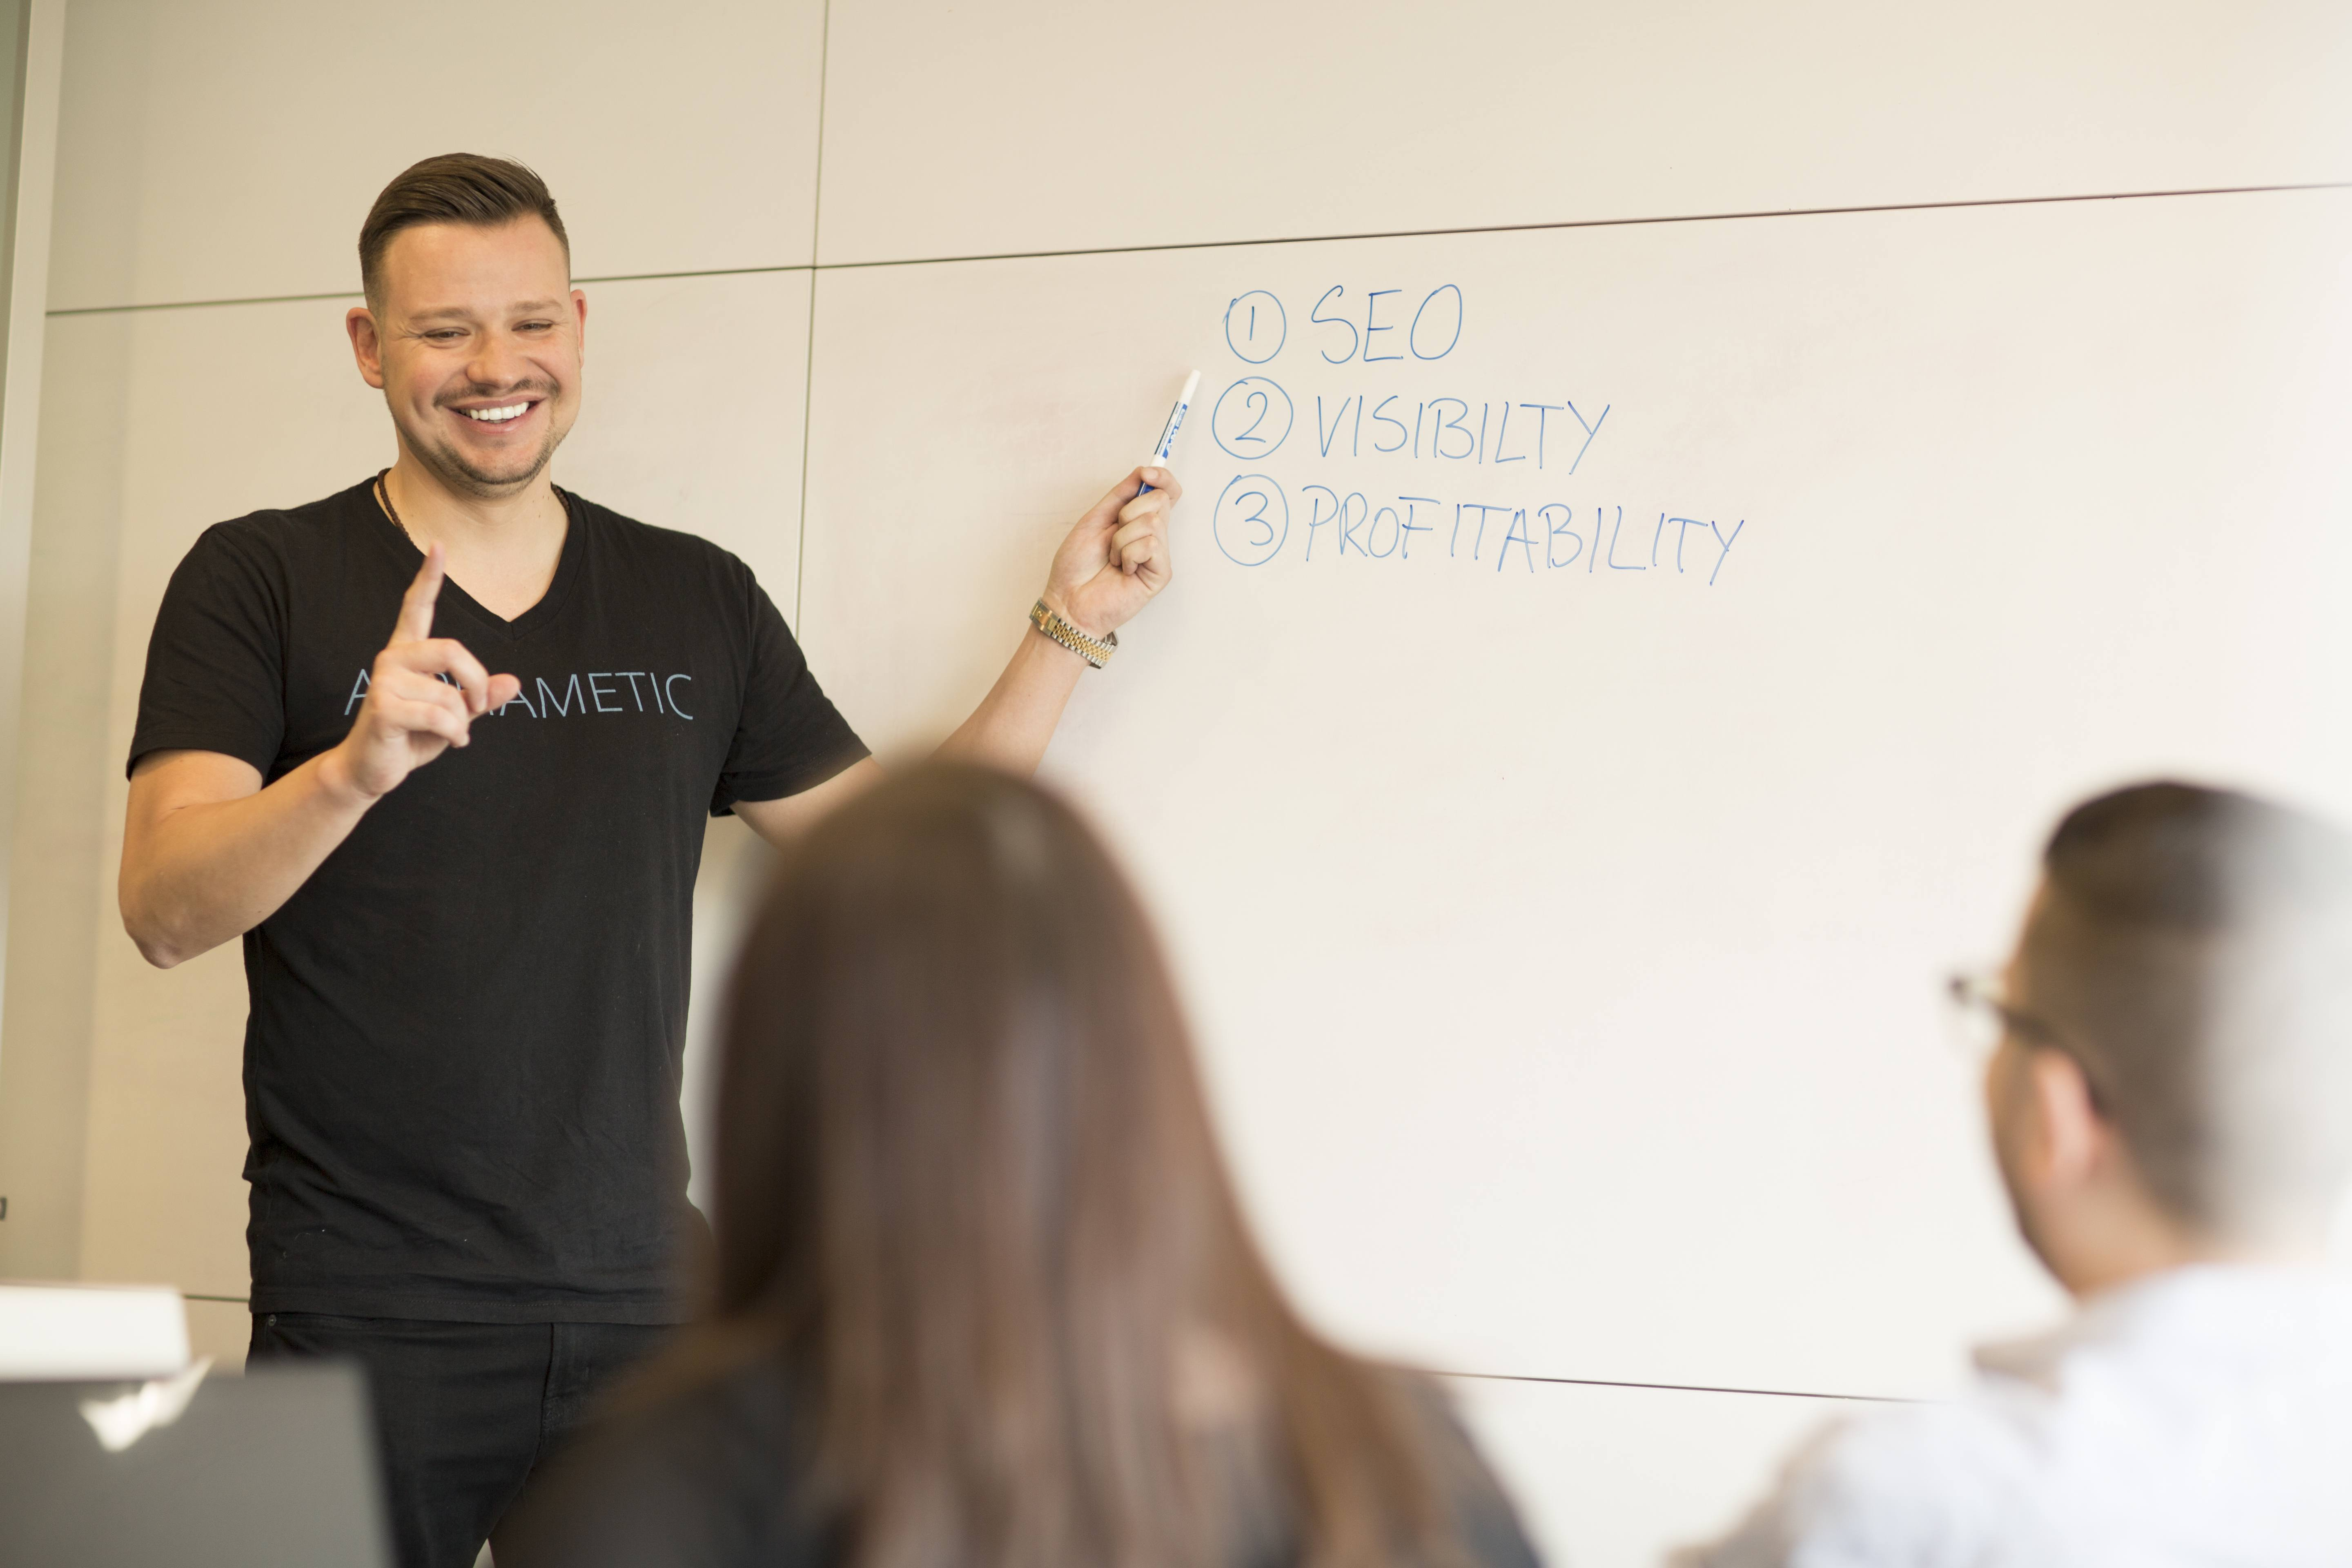 matthew capala seo workshop